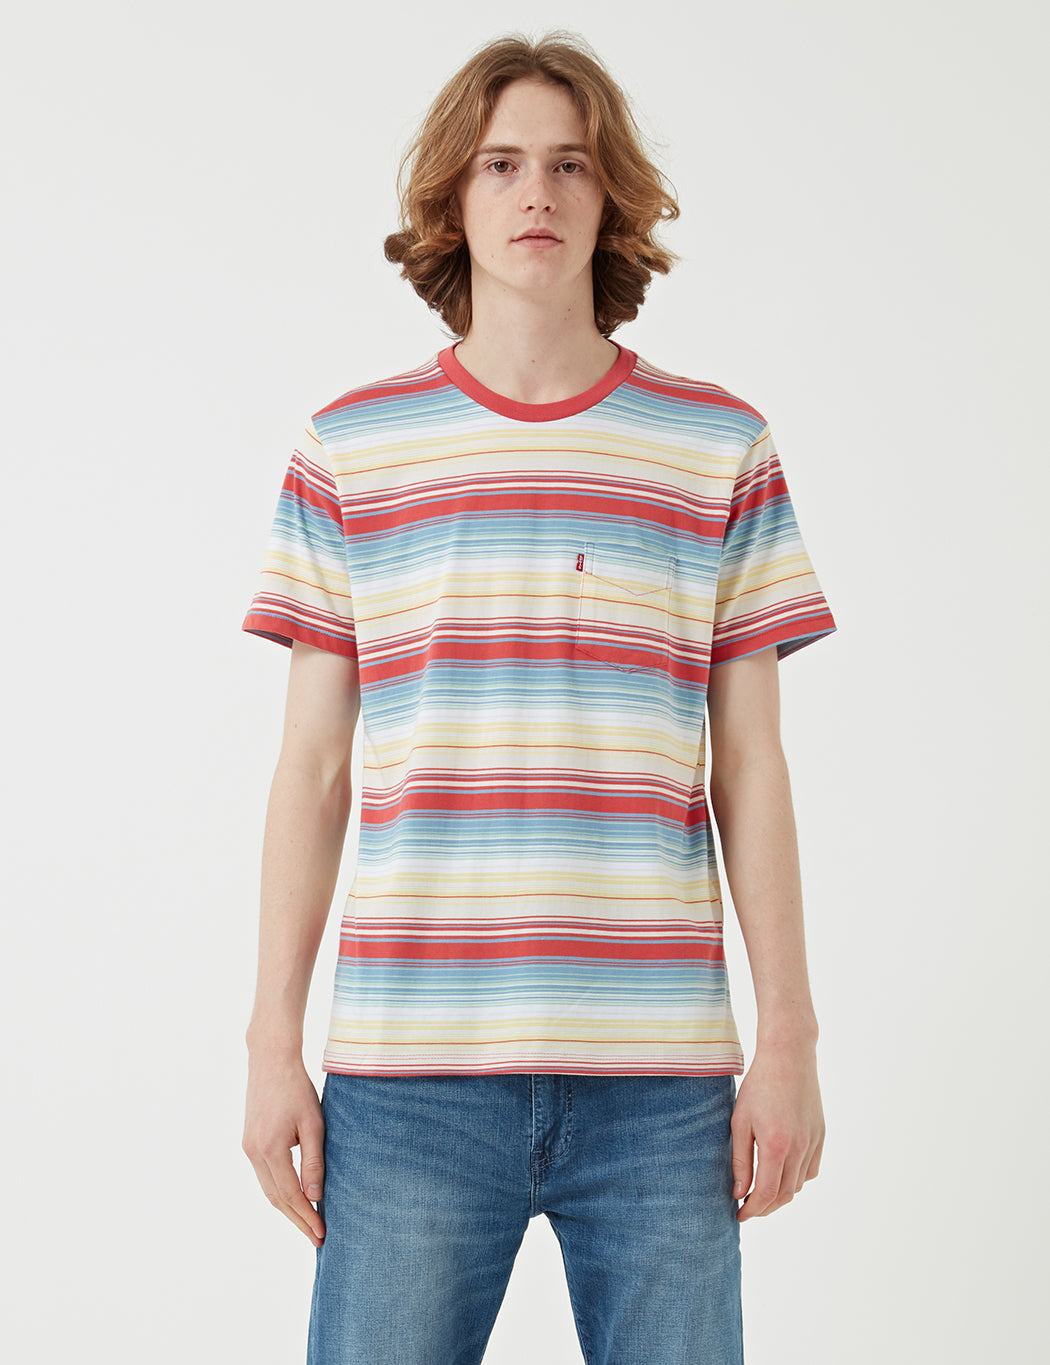 Levis Sunset Pocket T-shirt (Stripe) - Fiesta Stripe